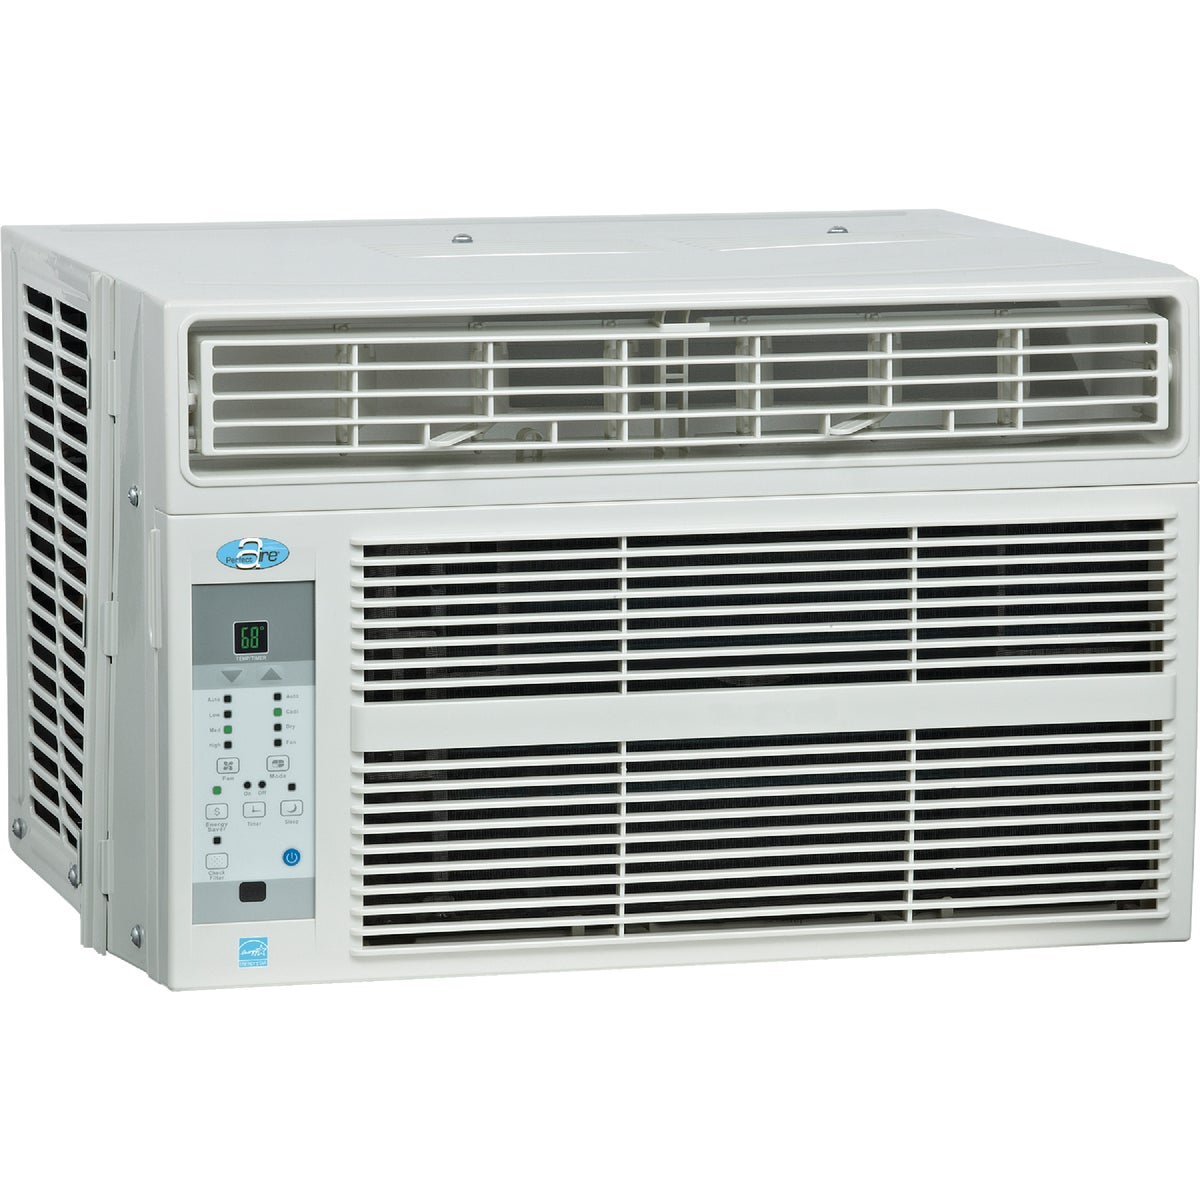 6000BTU AIR CONDITIONER - PAC6000 by Perfect Aire Import